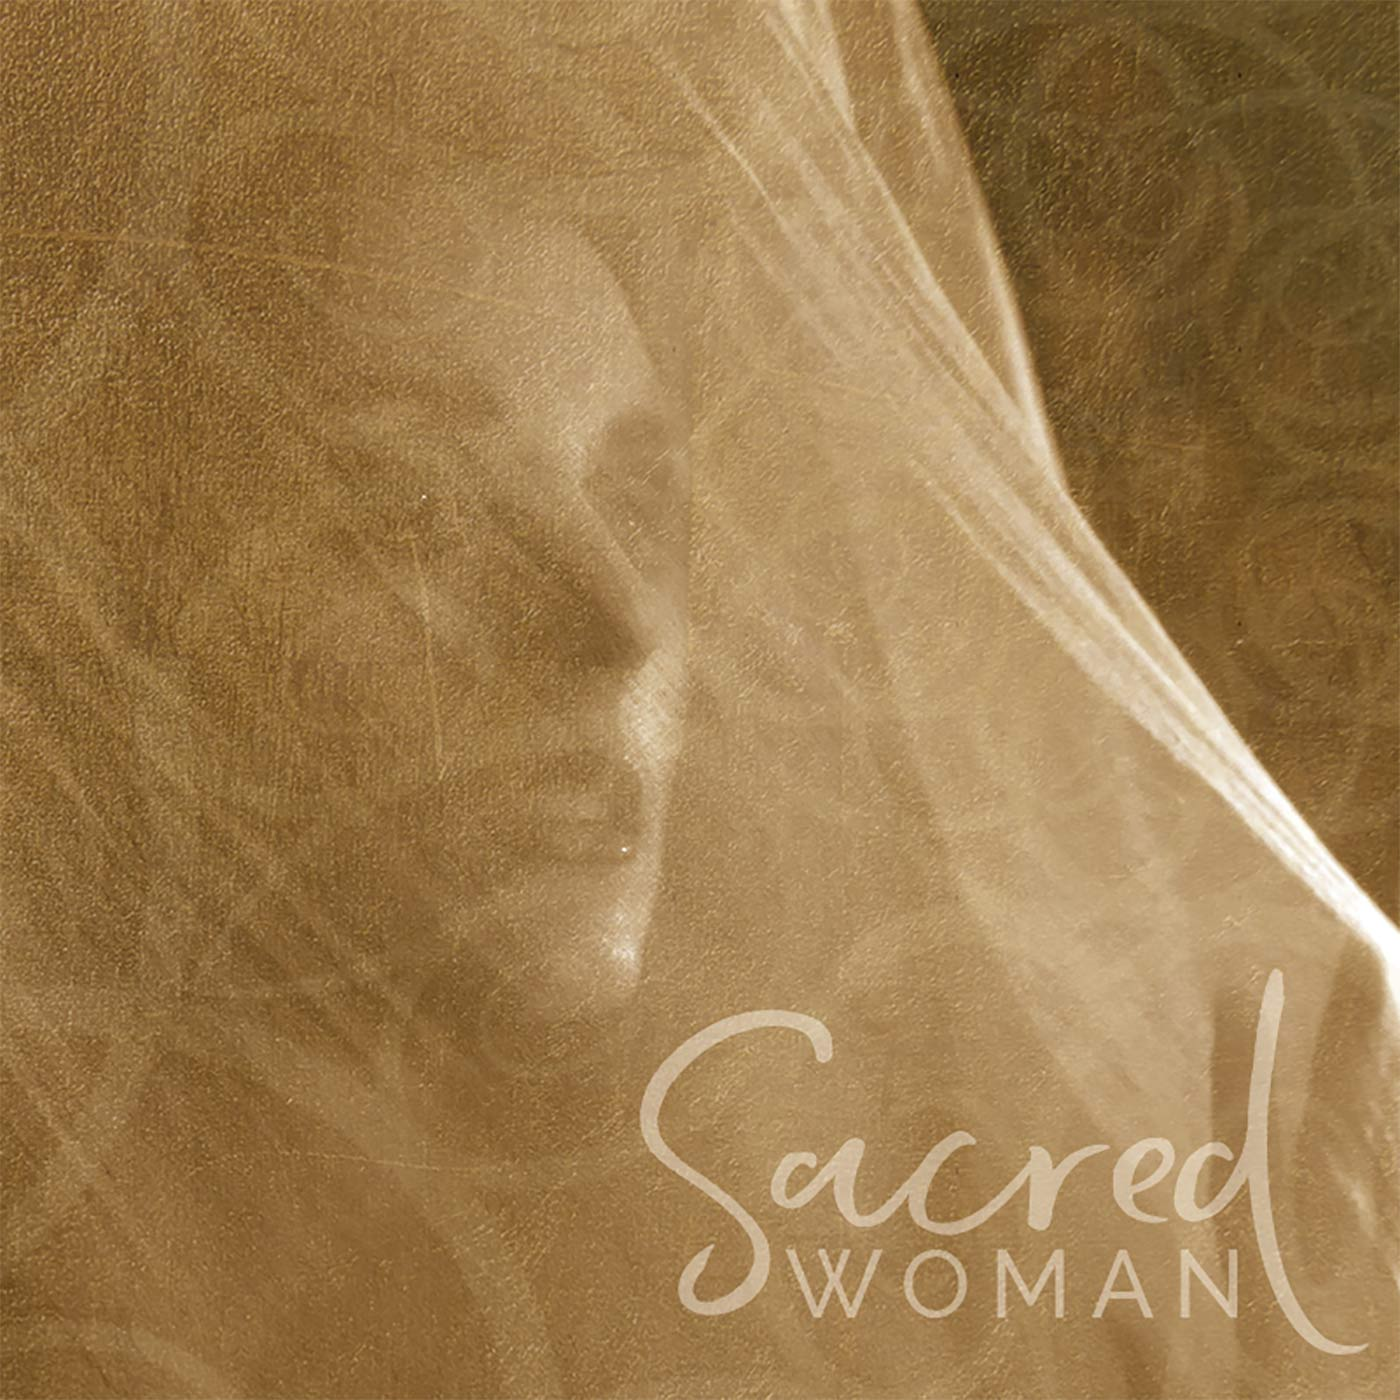 sacredwoman_tile